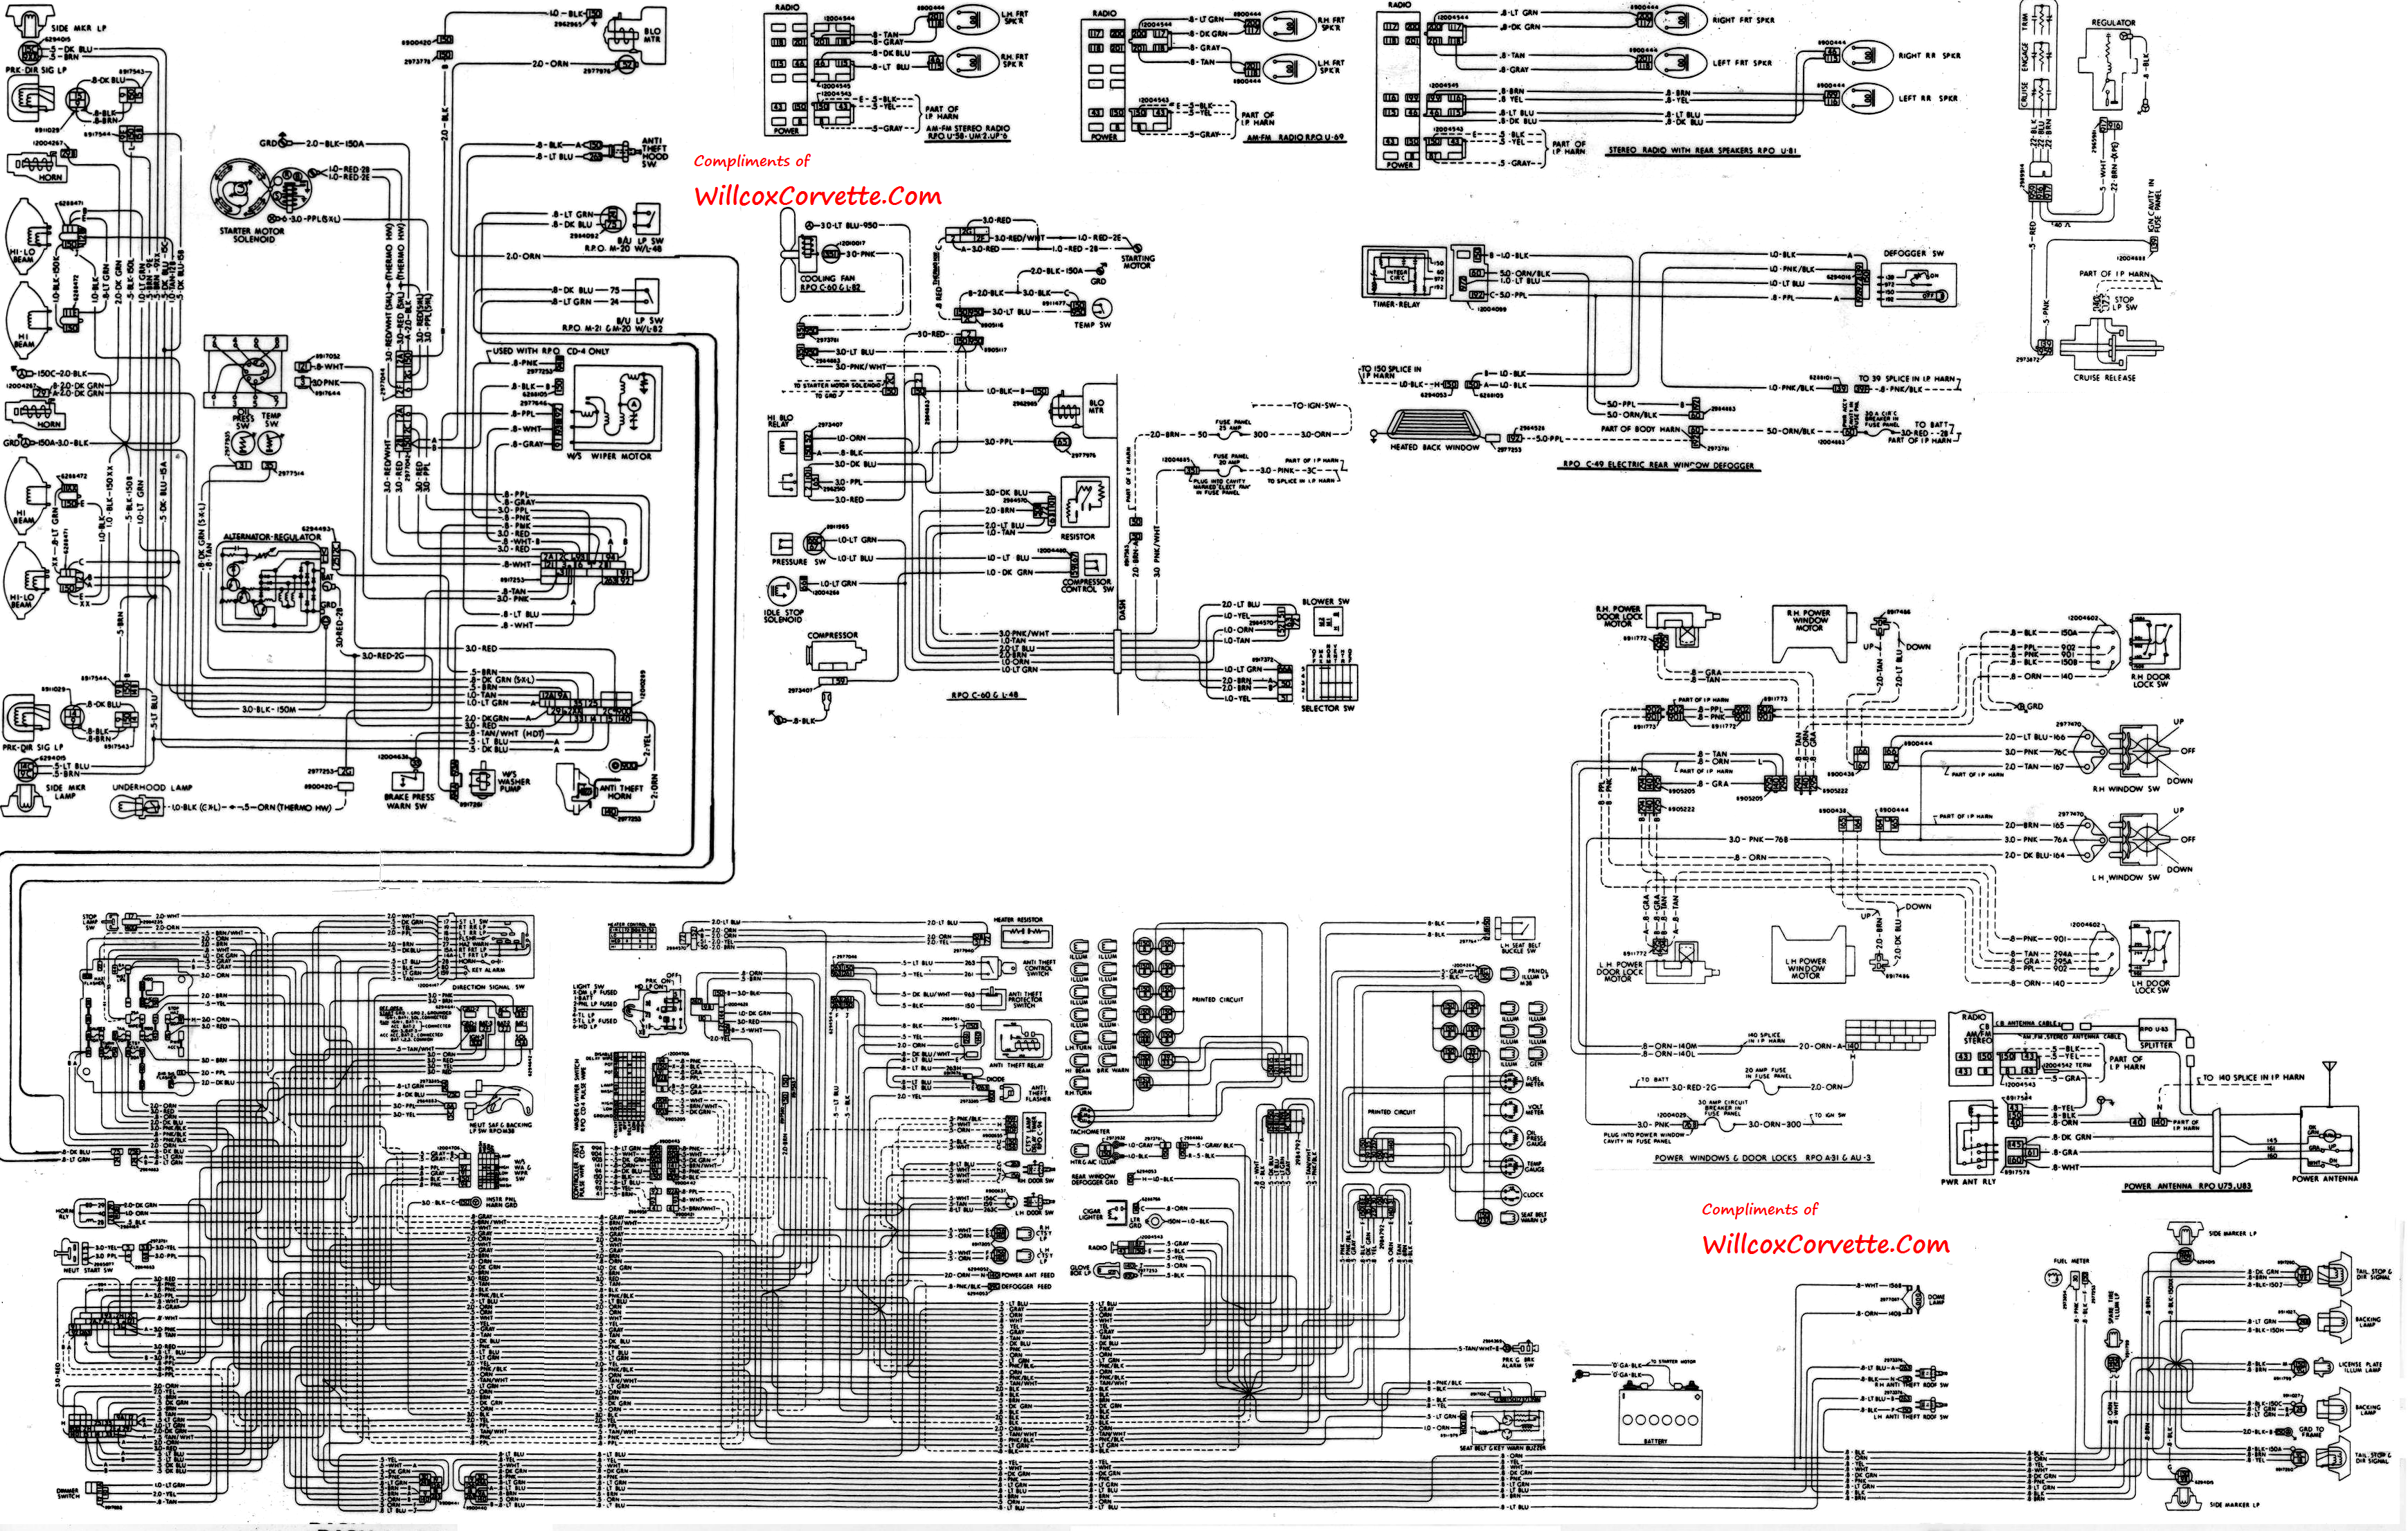 1979 wire diagram 1979 corvette tracer wiring diagram tracer schematic willcox 1975 corvette wiring diagram at reclaimingppi.co